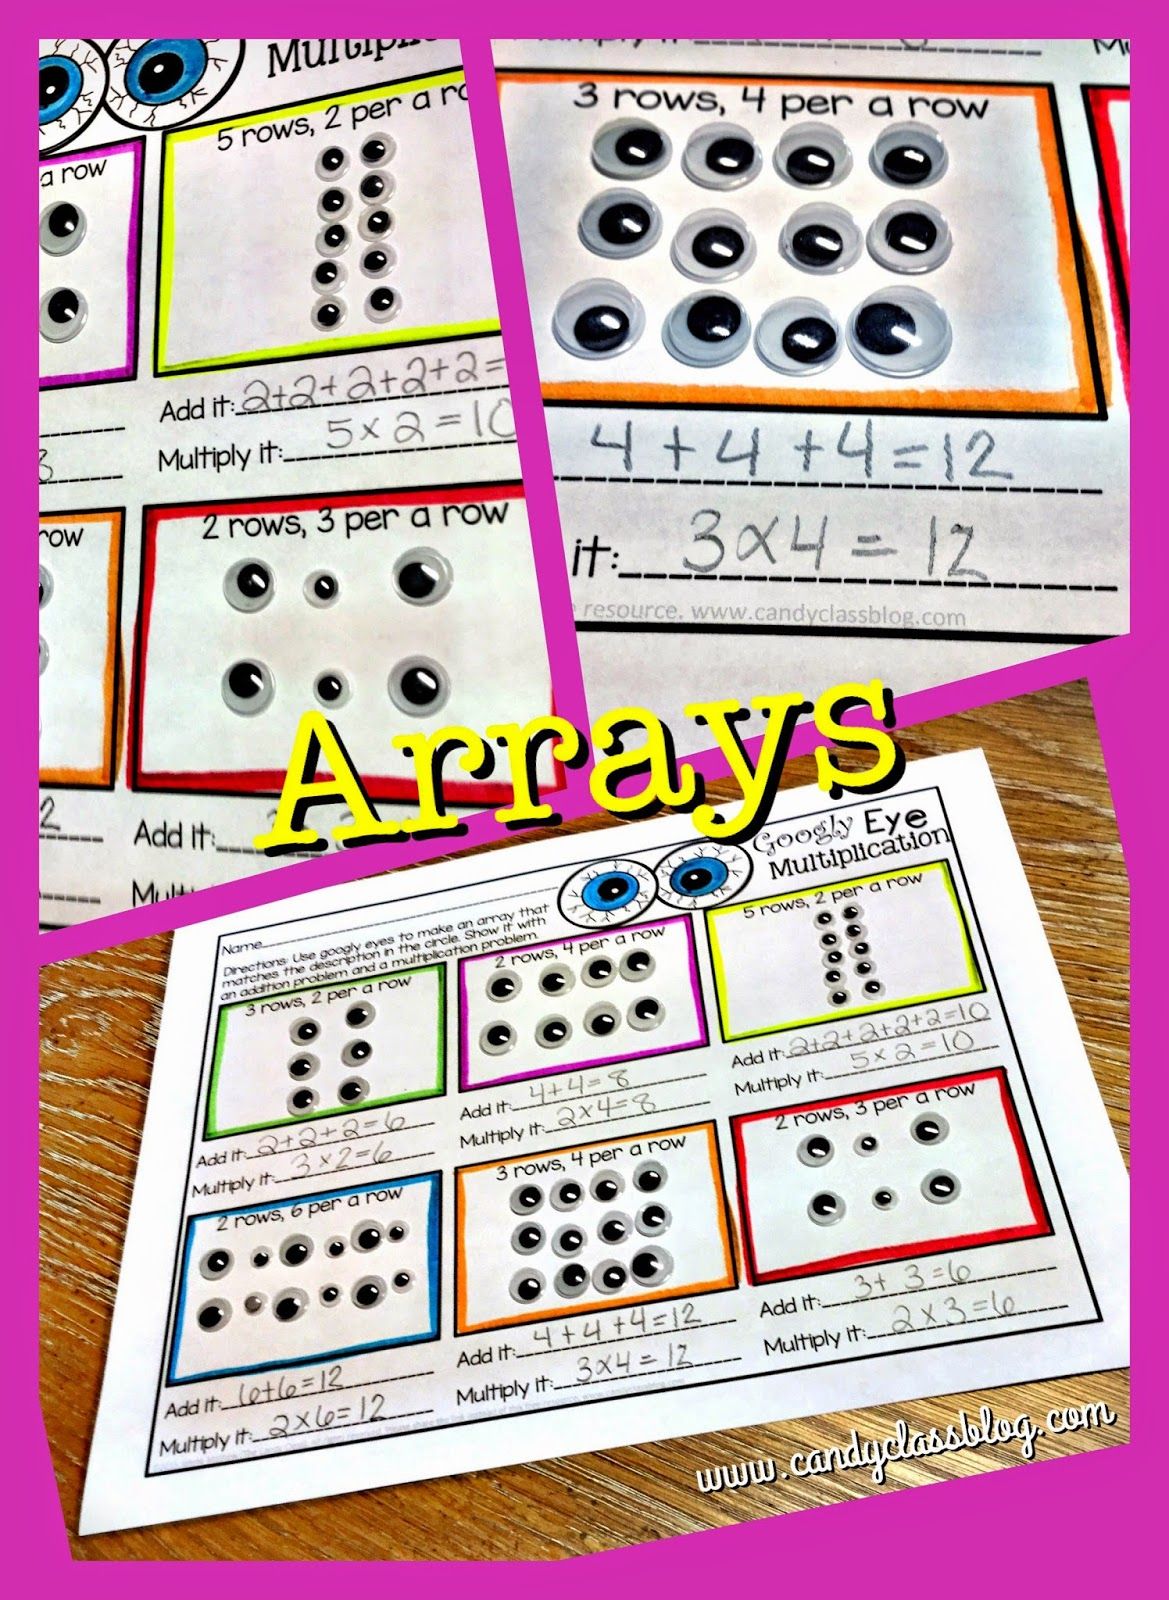 The Candy Class Getting Googly Eyed With Multiplication